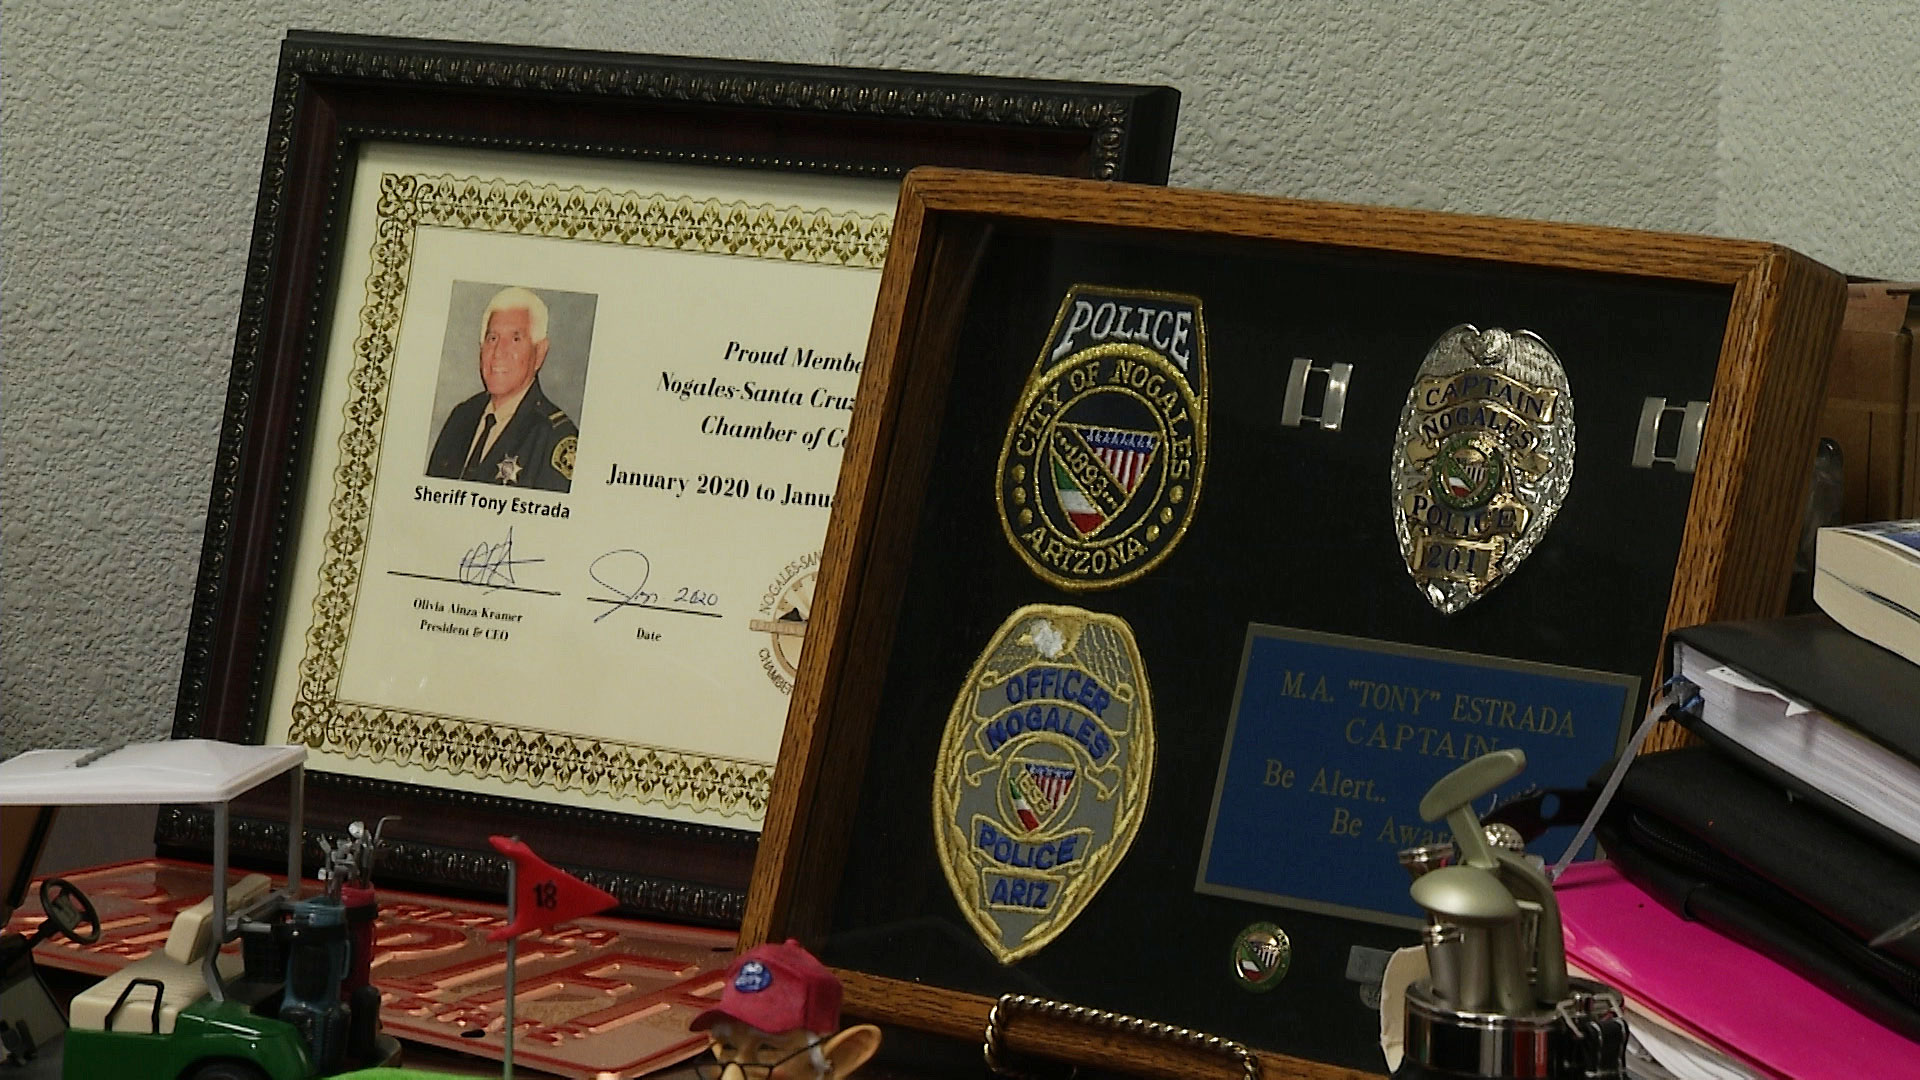 Framed keepsakes and police memorabilia adorn Santa Cruz County Sheriff Tony Estrada's office.